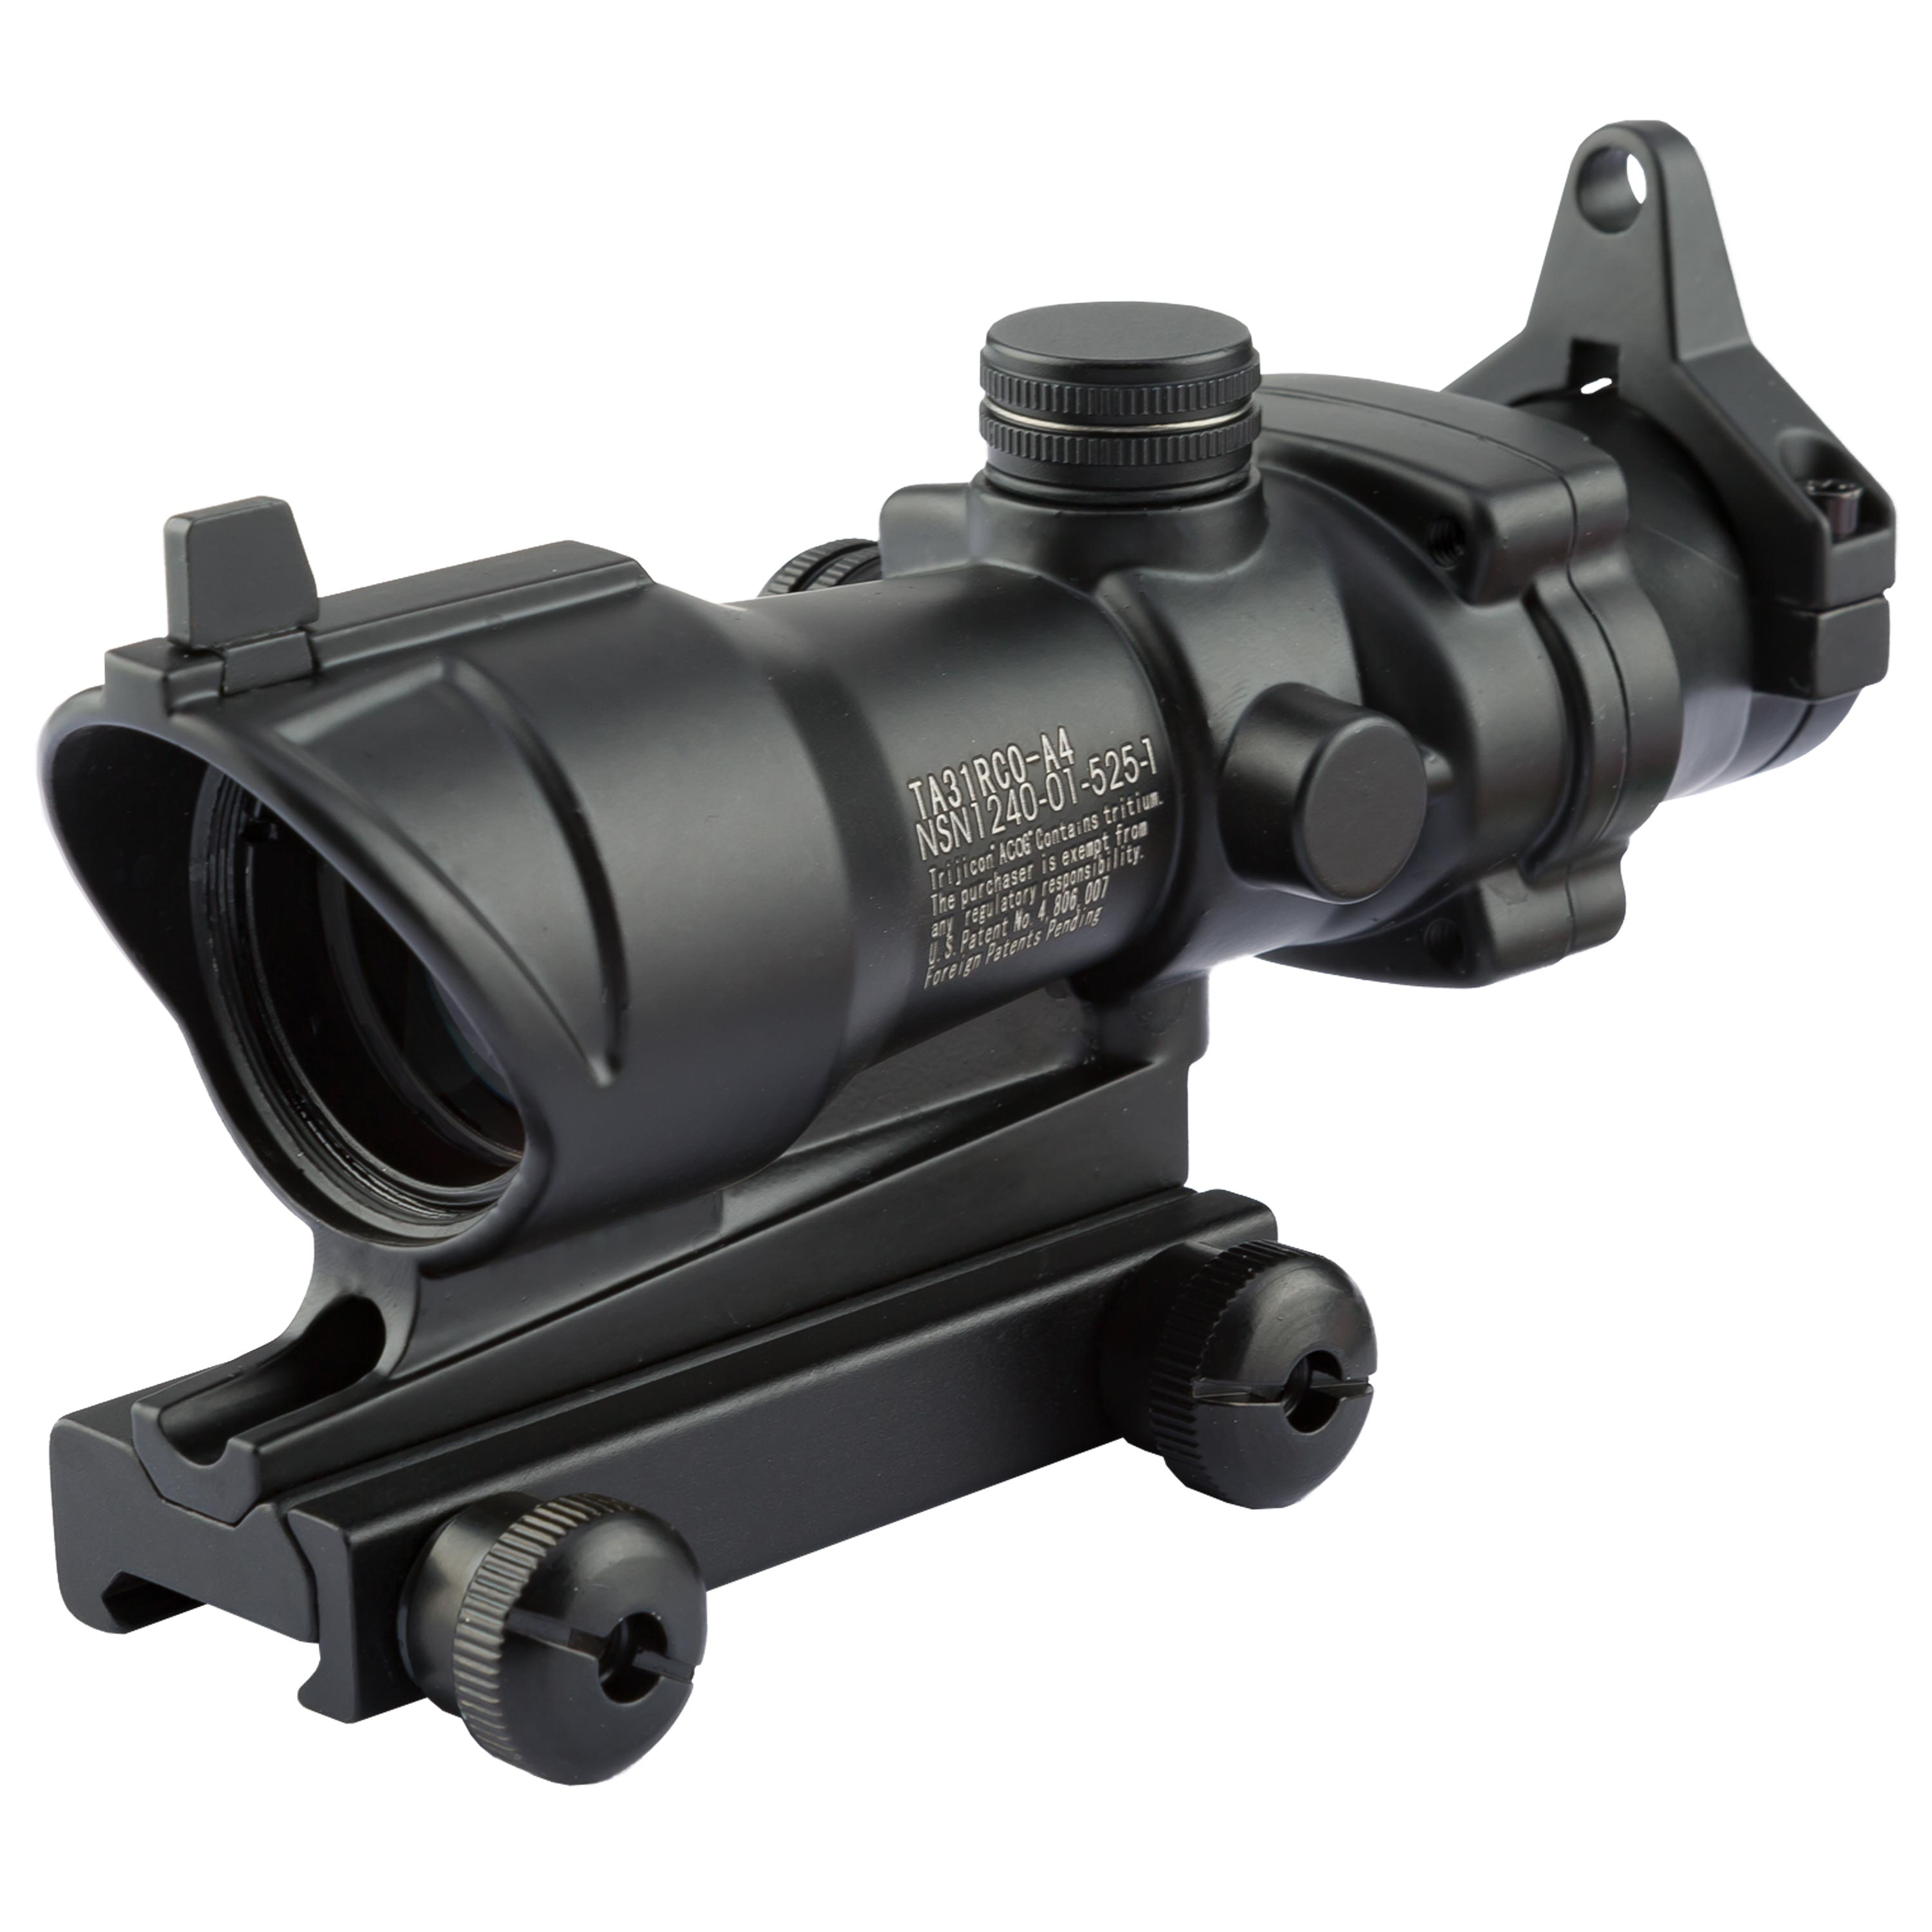 Puntatore ottico A.C.O.G. Tipo 4x32 Scope GFA nero